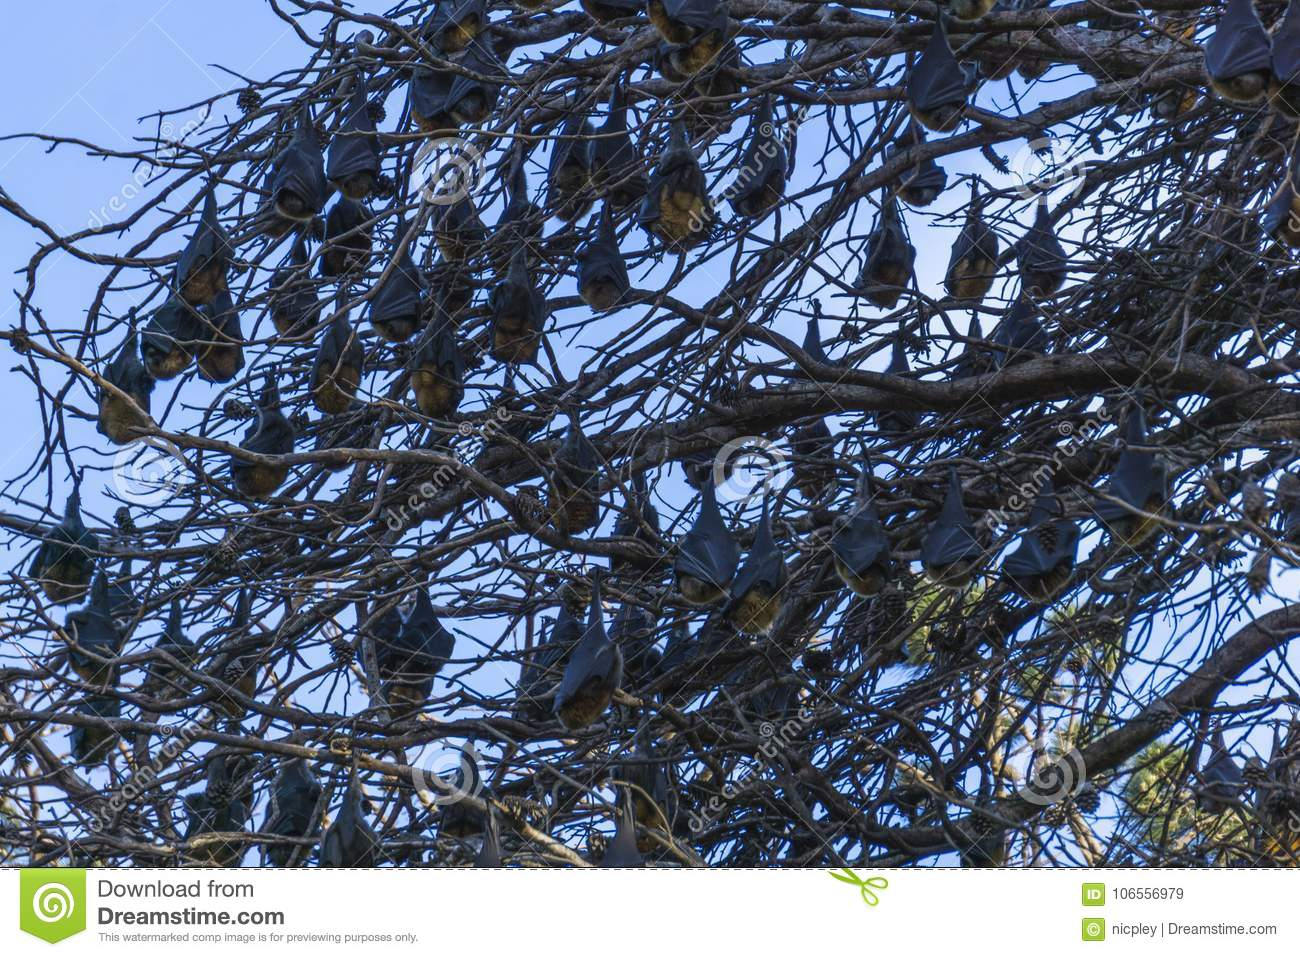 Bats just hanging out in tree